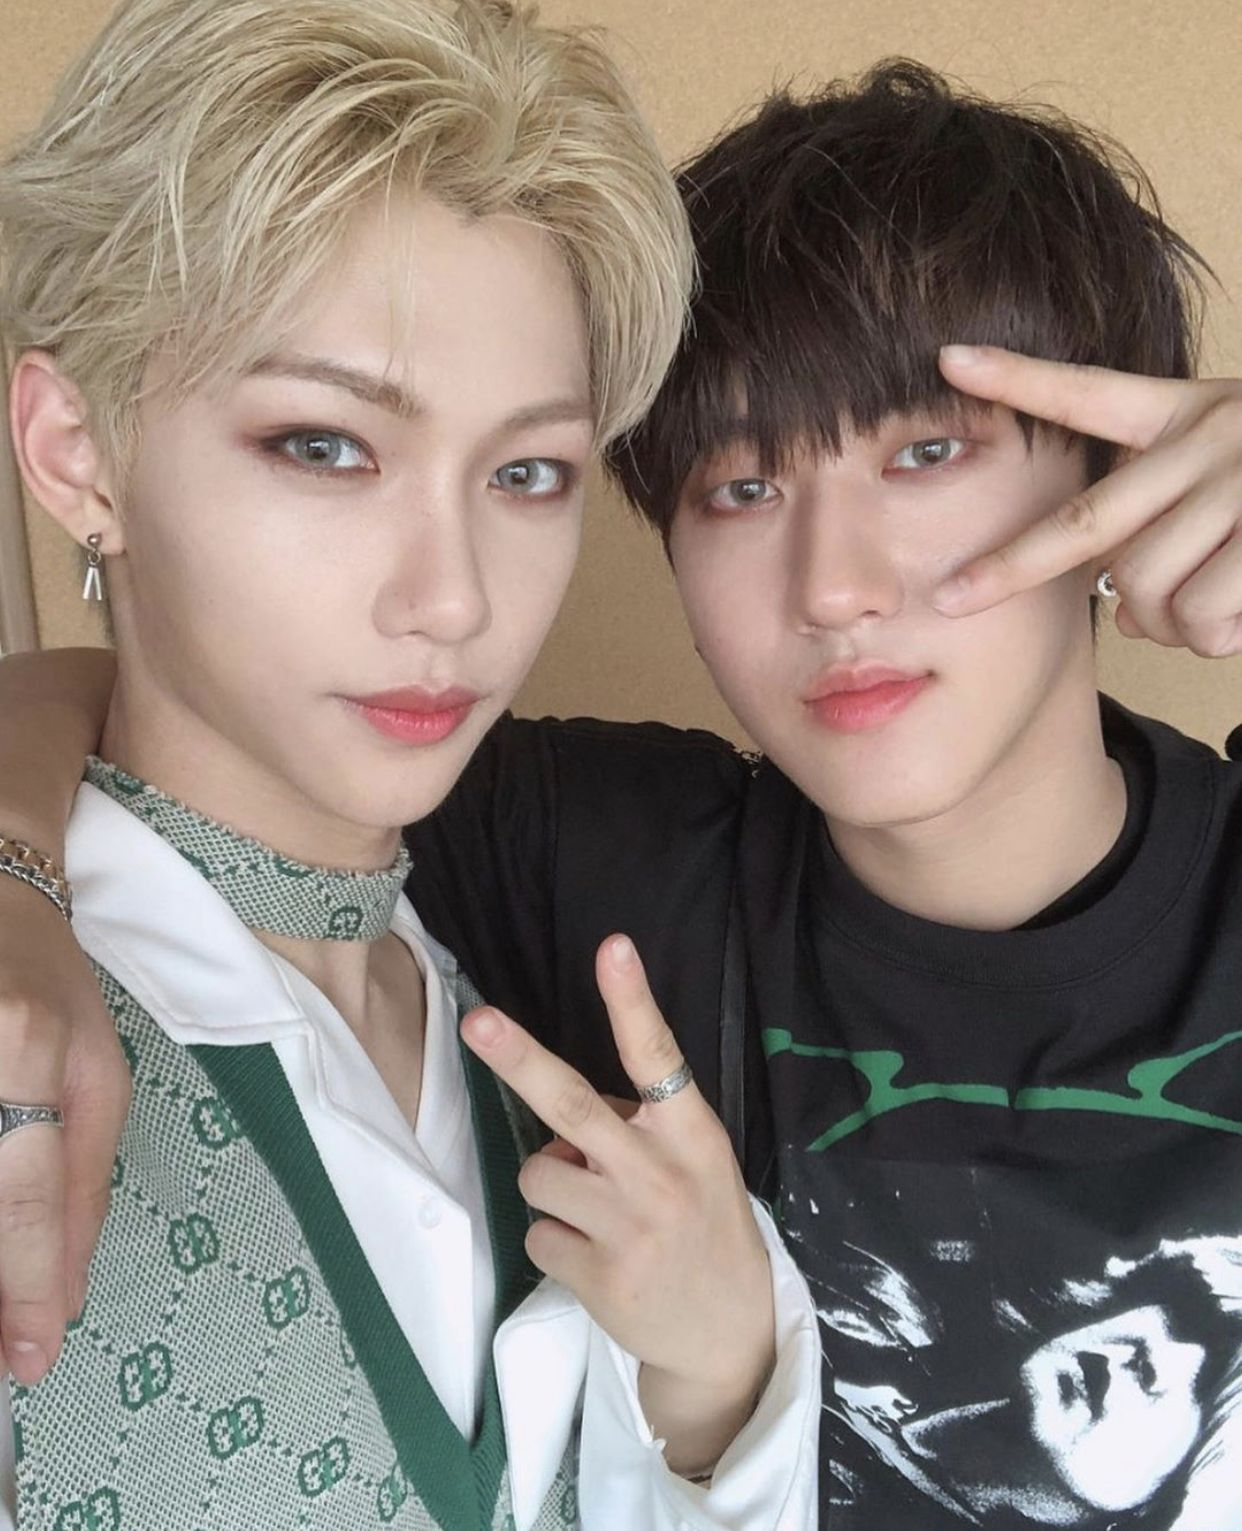 #Felix and #Changbin ~ #StrayKids #changbinstraykids